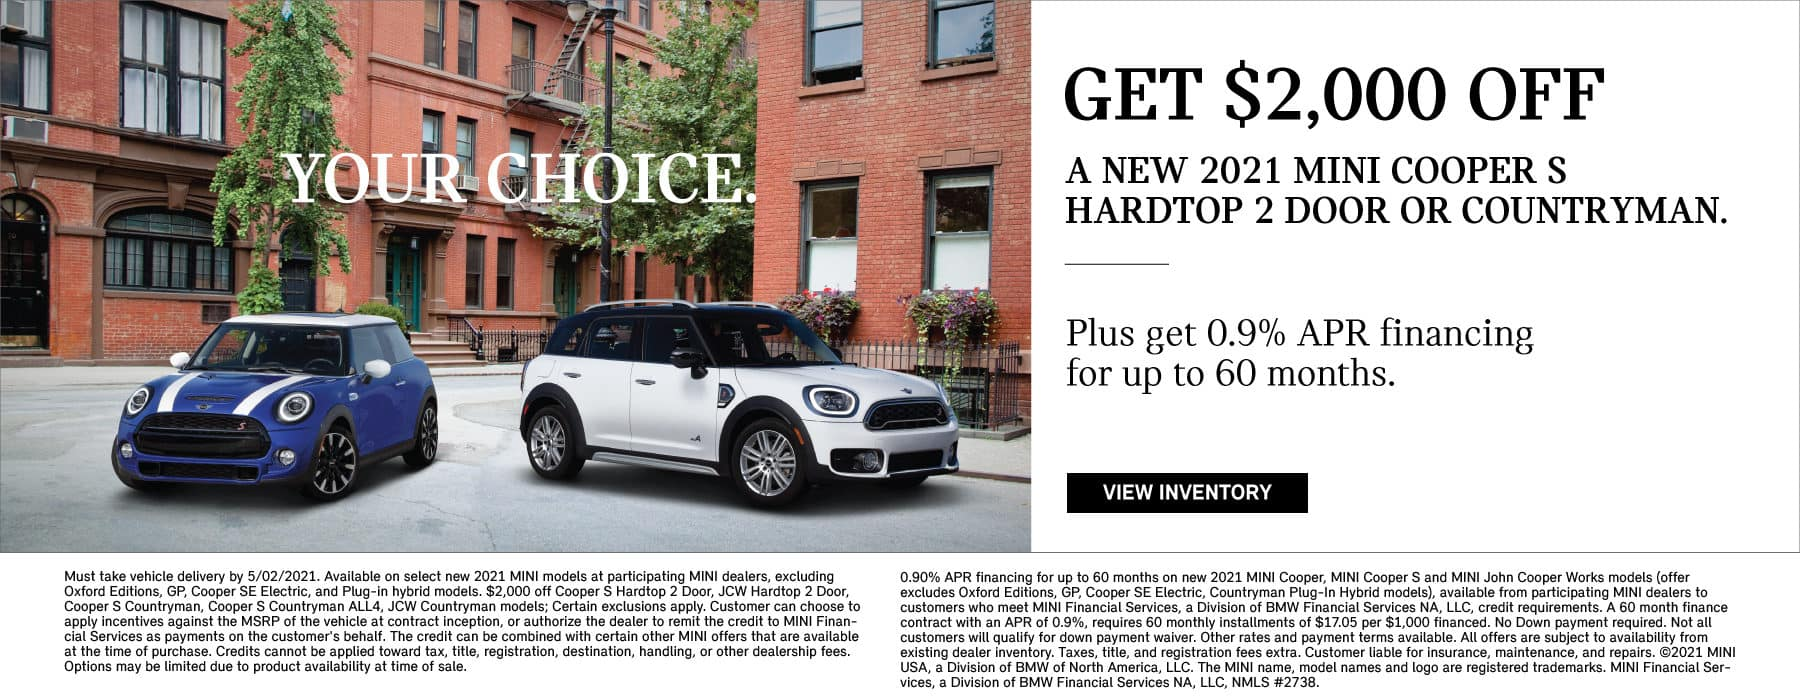 Get $2,000 off a new 2021 MINI Cooper S Hardtop 2 Door or Countryman. Plus get 0.9% APR financing for up to 60 months. Valid through 05/02/21. Click to view inventory. See dealer for full details. Picture shows a blue and white 2021 MINI Cooper S Hardtop 2 Door and a white 2021 MINI Cooper S Countryman parked next to each other in an urban area.